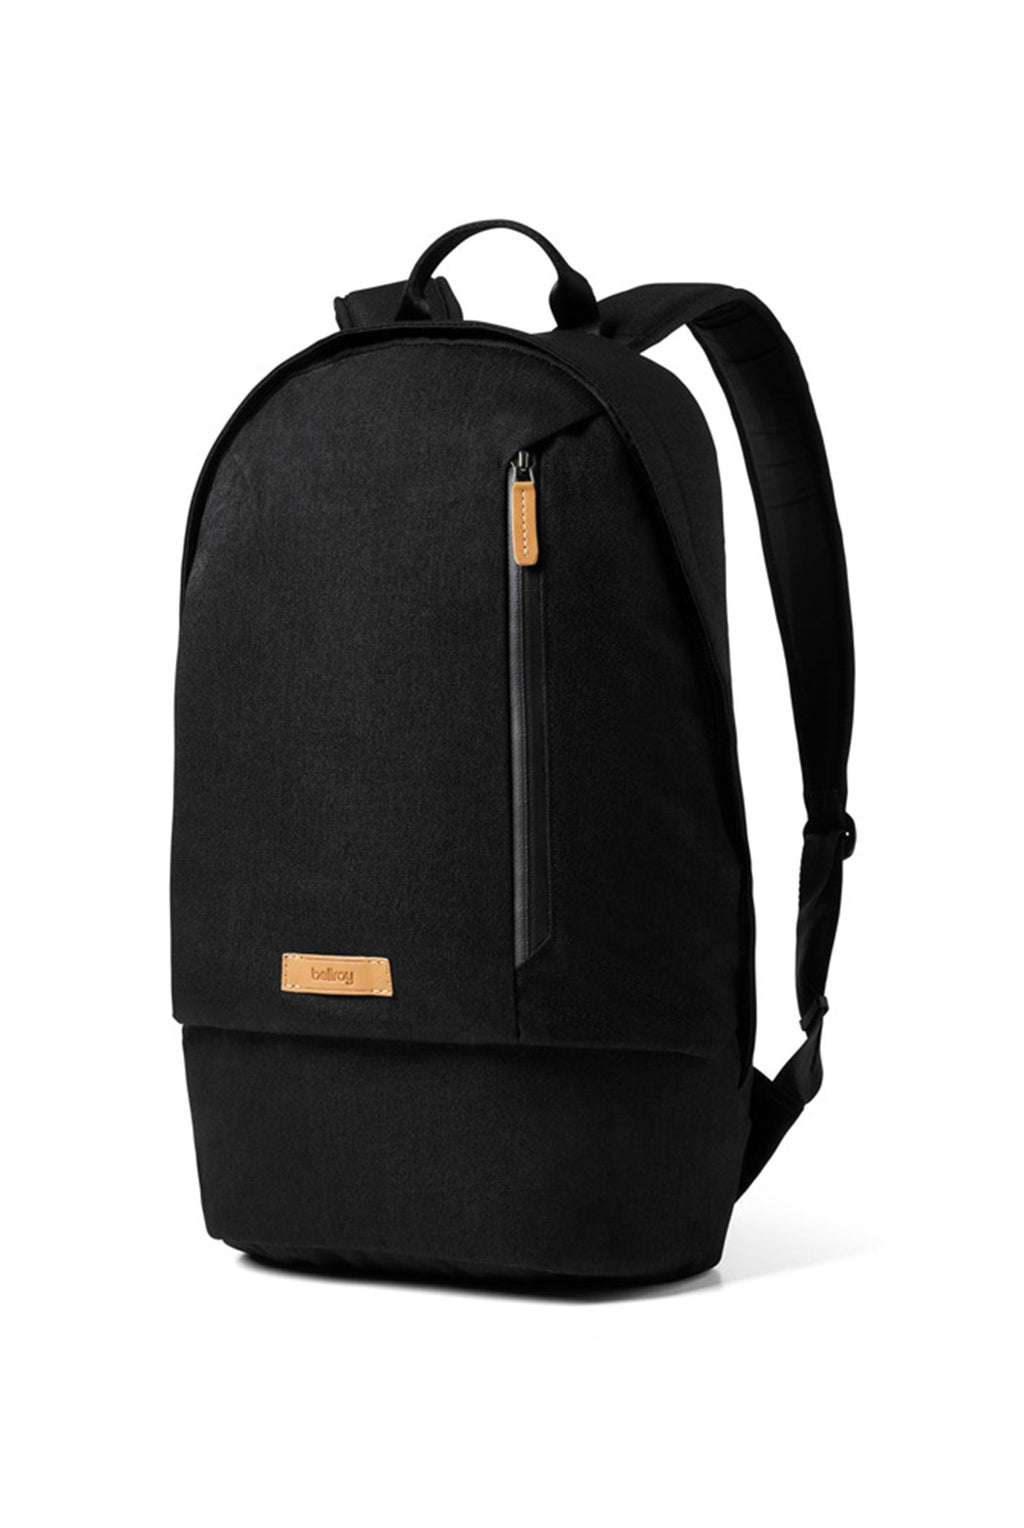 Bellroy - Campus Backpack - 16L - Black